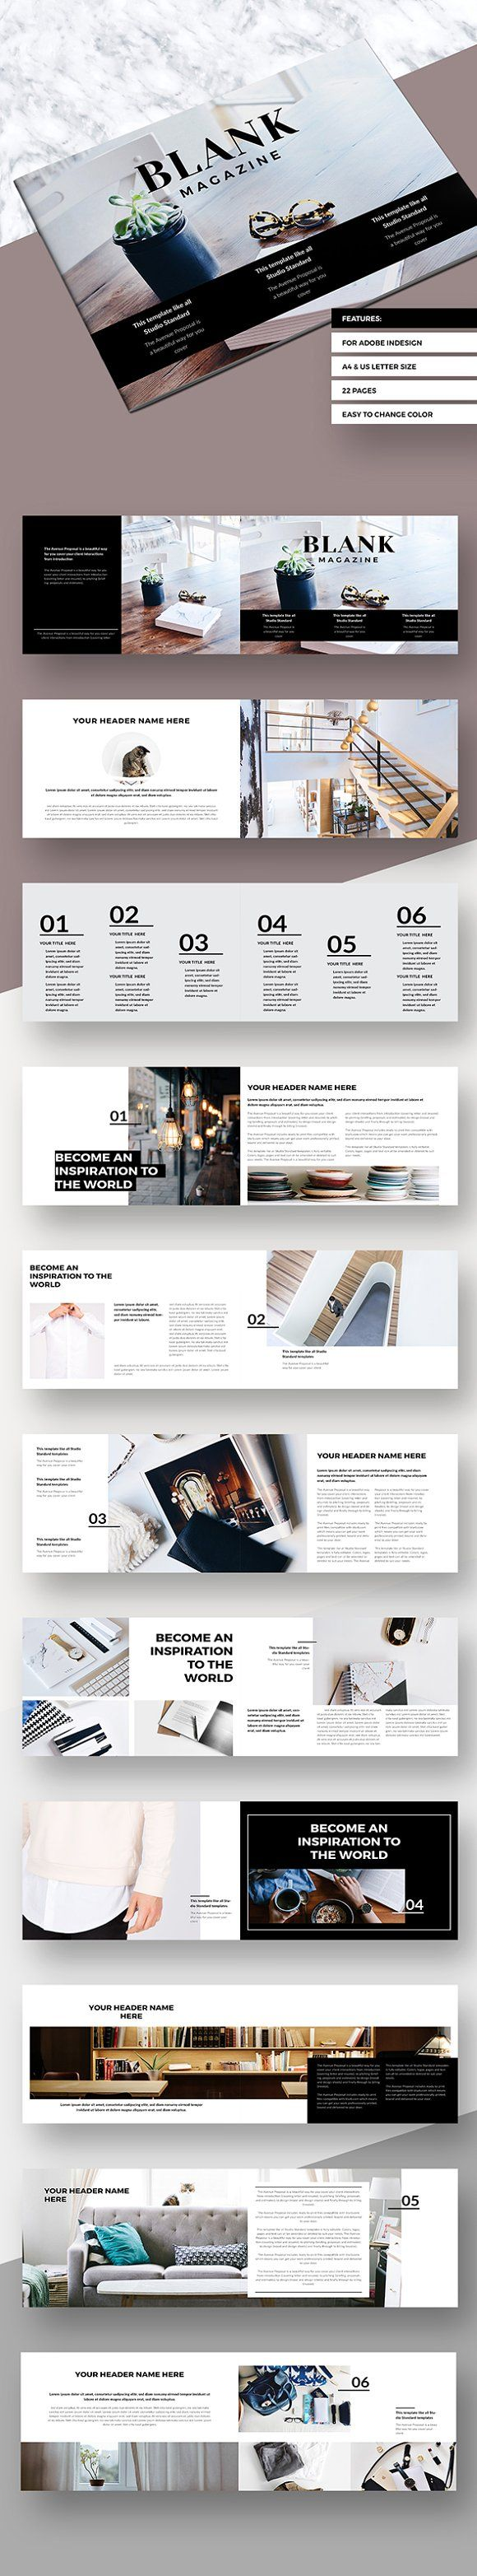 Simple Magazine Landscape by Fitra Noor on @creativemarket